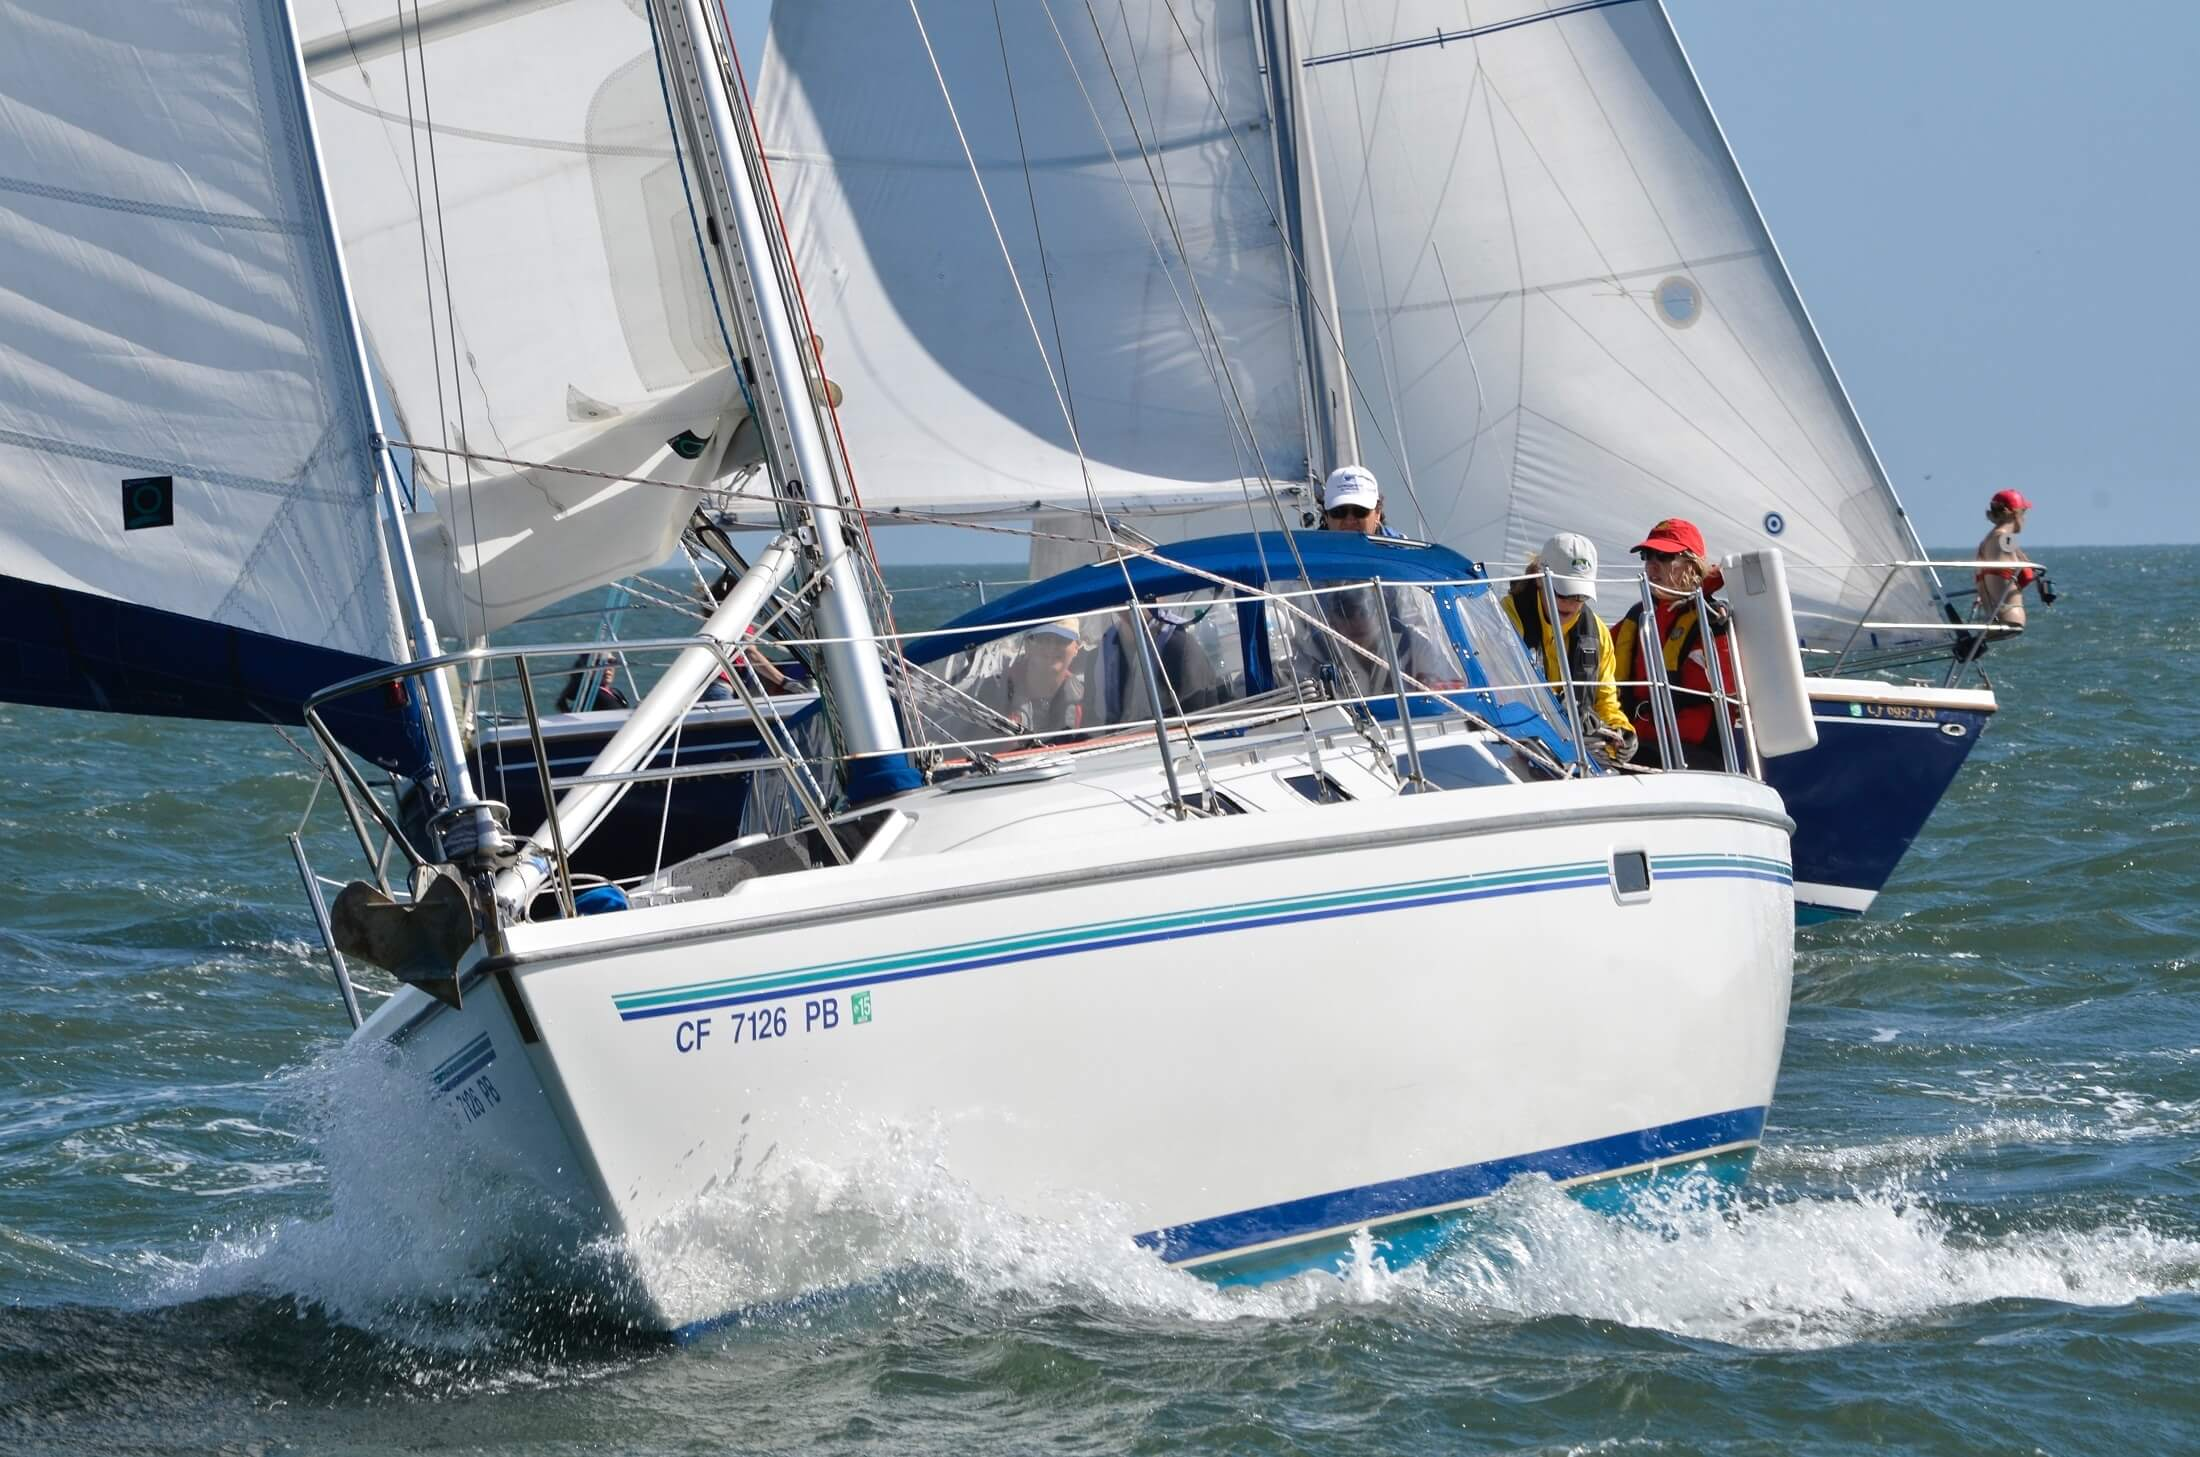 family sailing holiday - yacht on the water